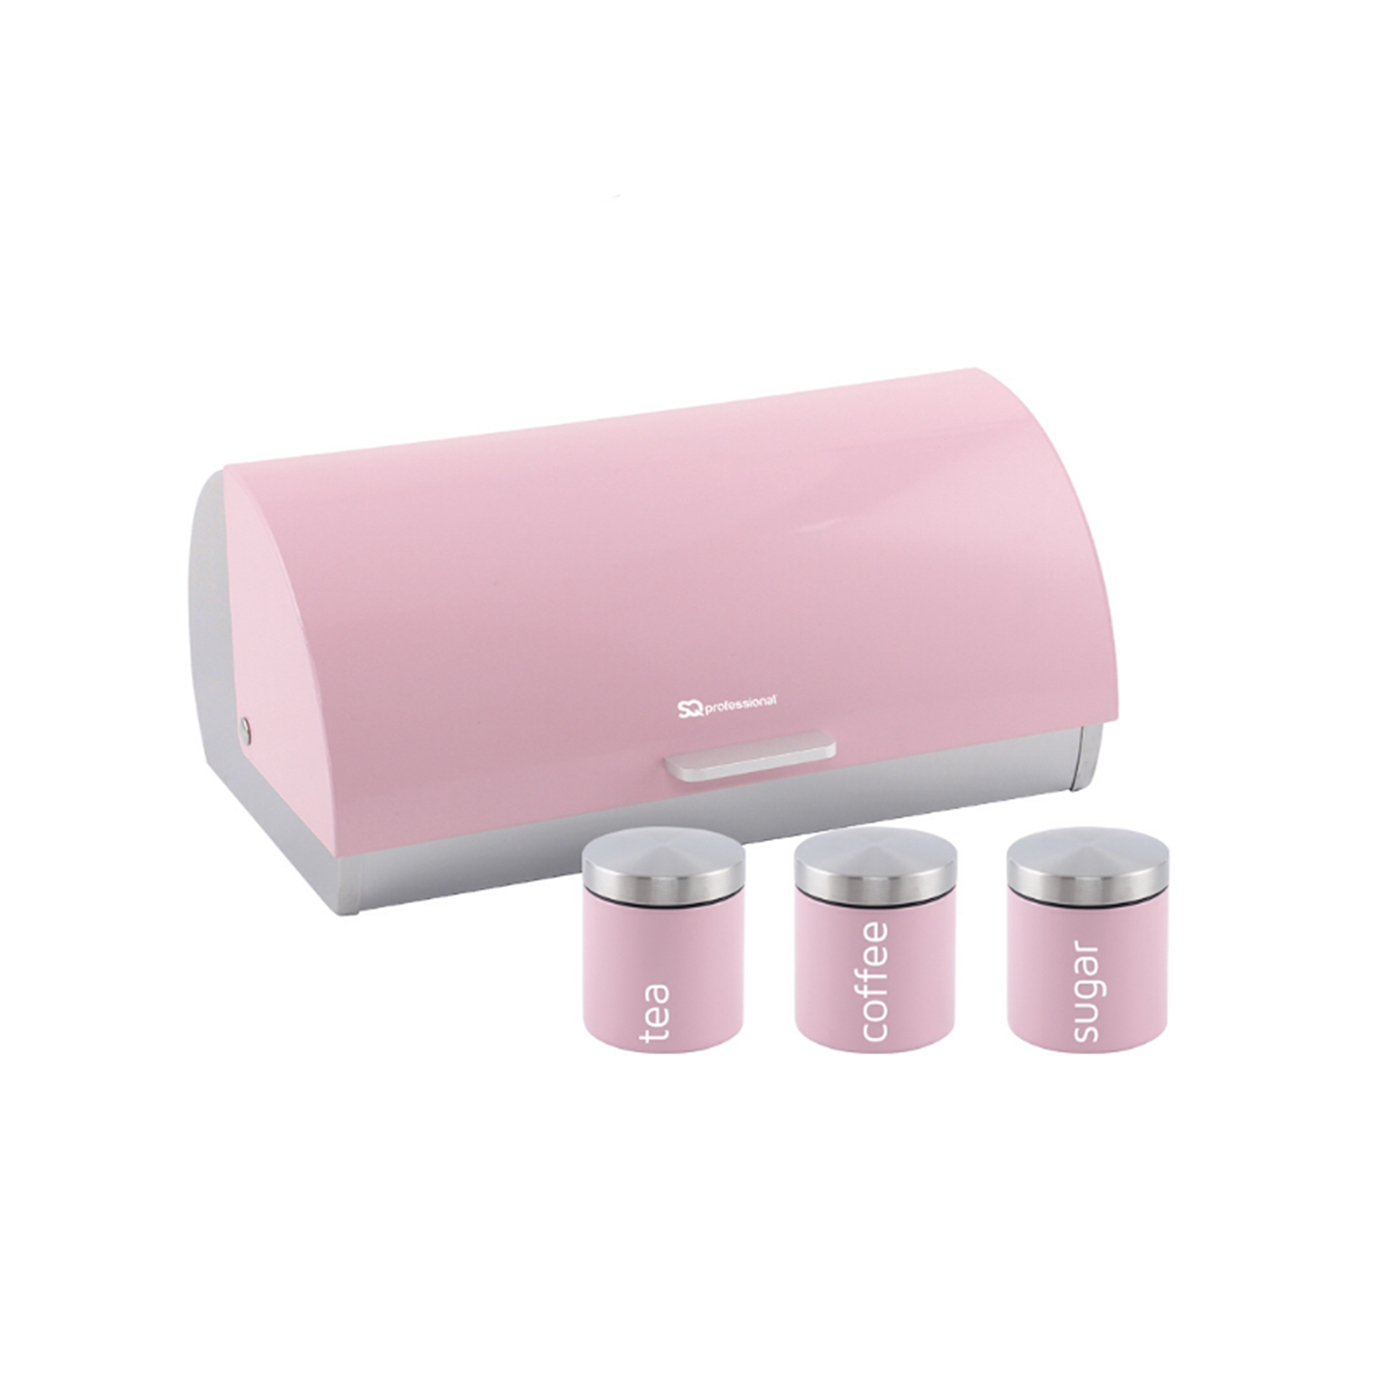 Tea And Sugar Canisters Set  Stainless Steel In 3